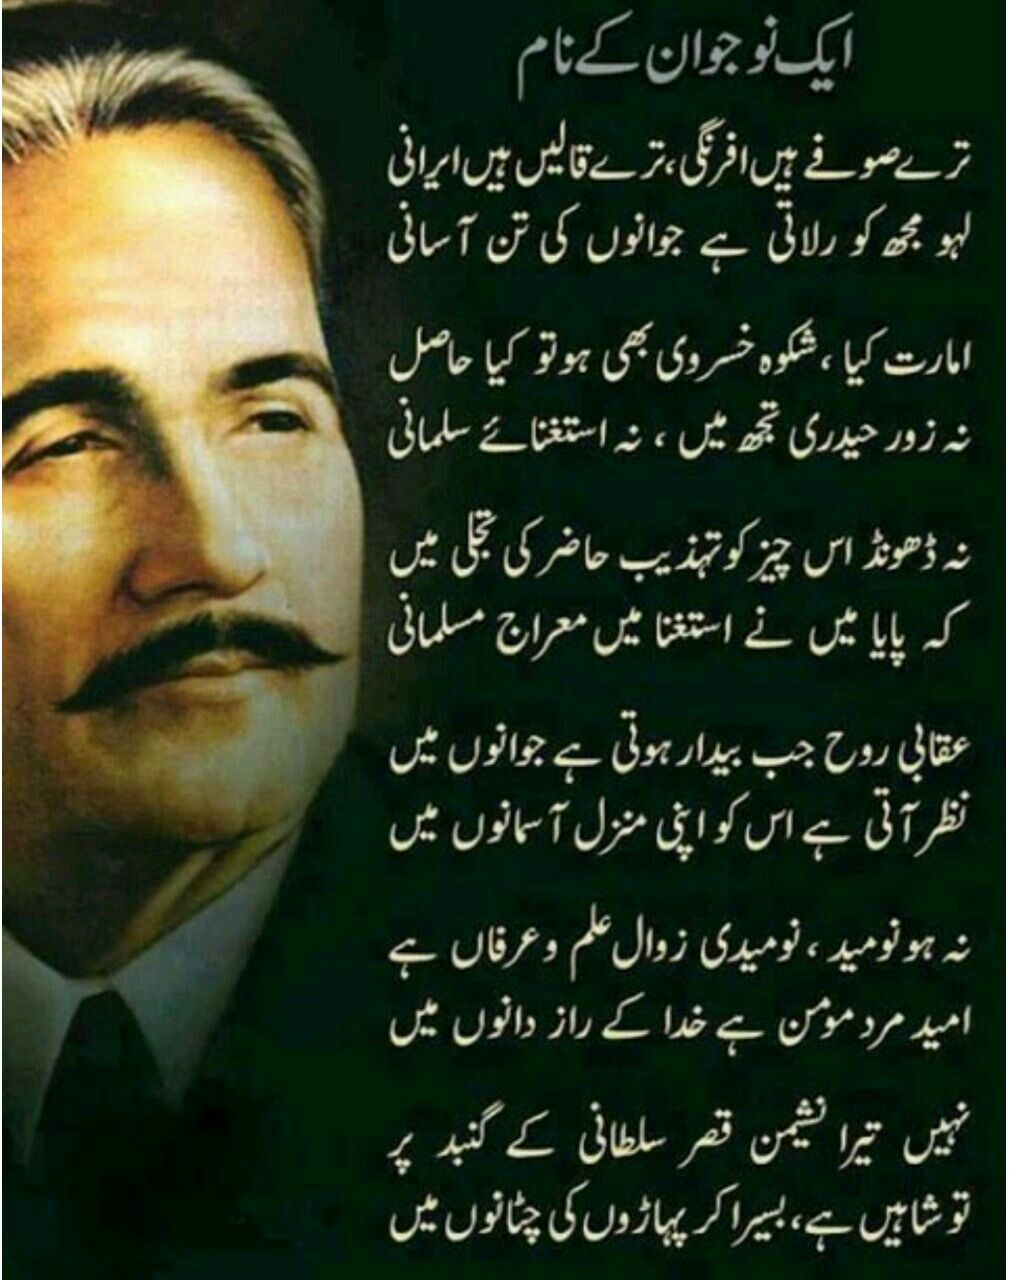 allama iqbal and young generation Sir muhammad iqbal (urdu: محمد اِقبال ‬ ‎) (november 9, 1877 - april 21, 1938), widely known as allama iqbal, was a poet, philosopher and politician, as well as an academic, barrister and scholar in british india who is widely regarded as having inspired the pakistan movement.